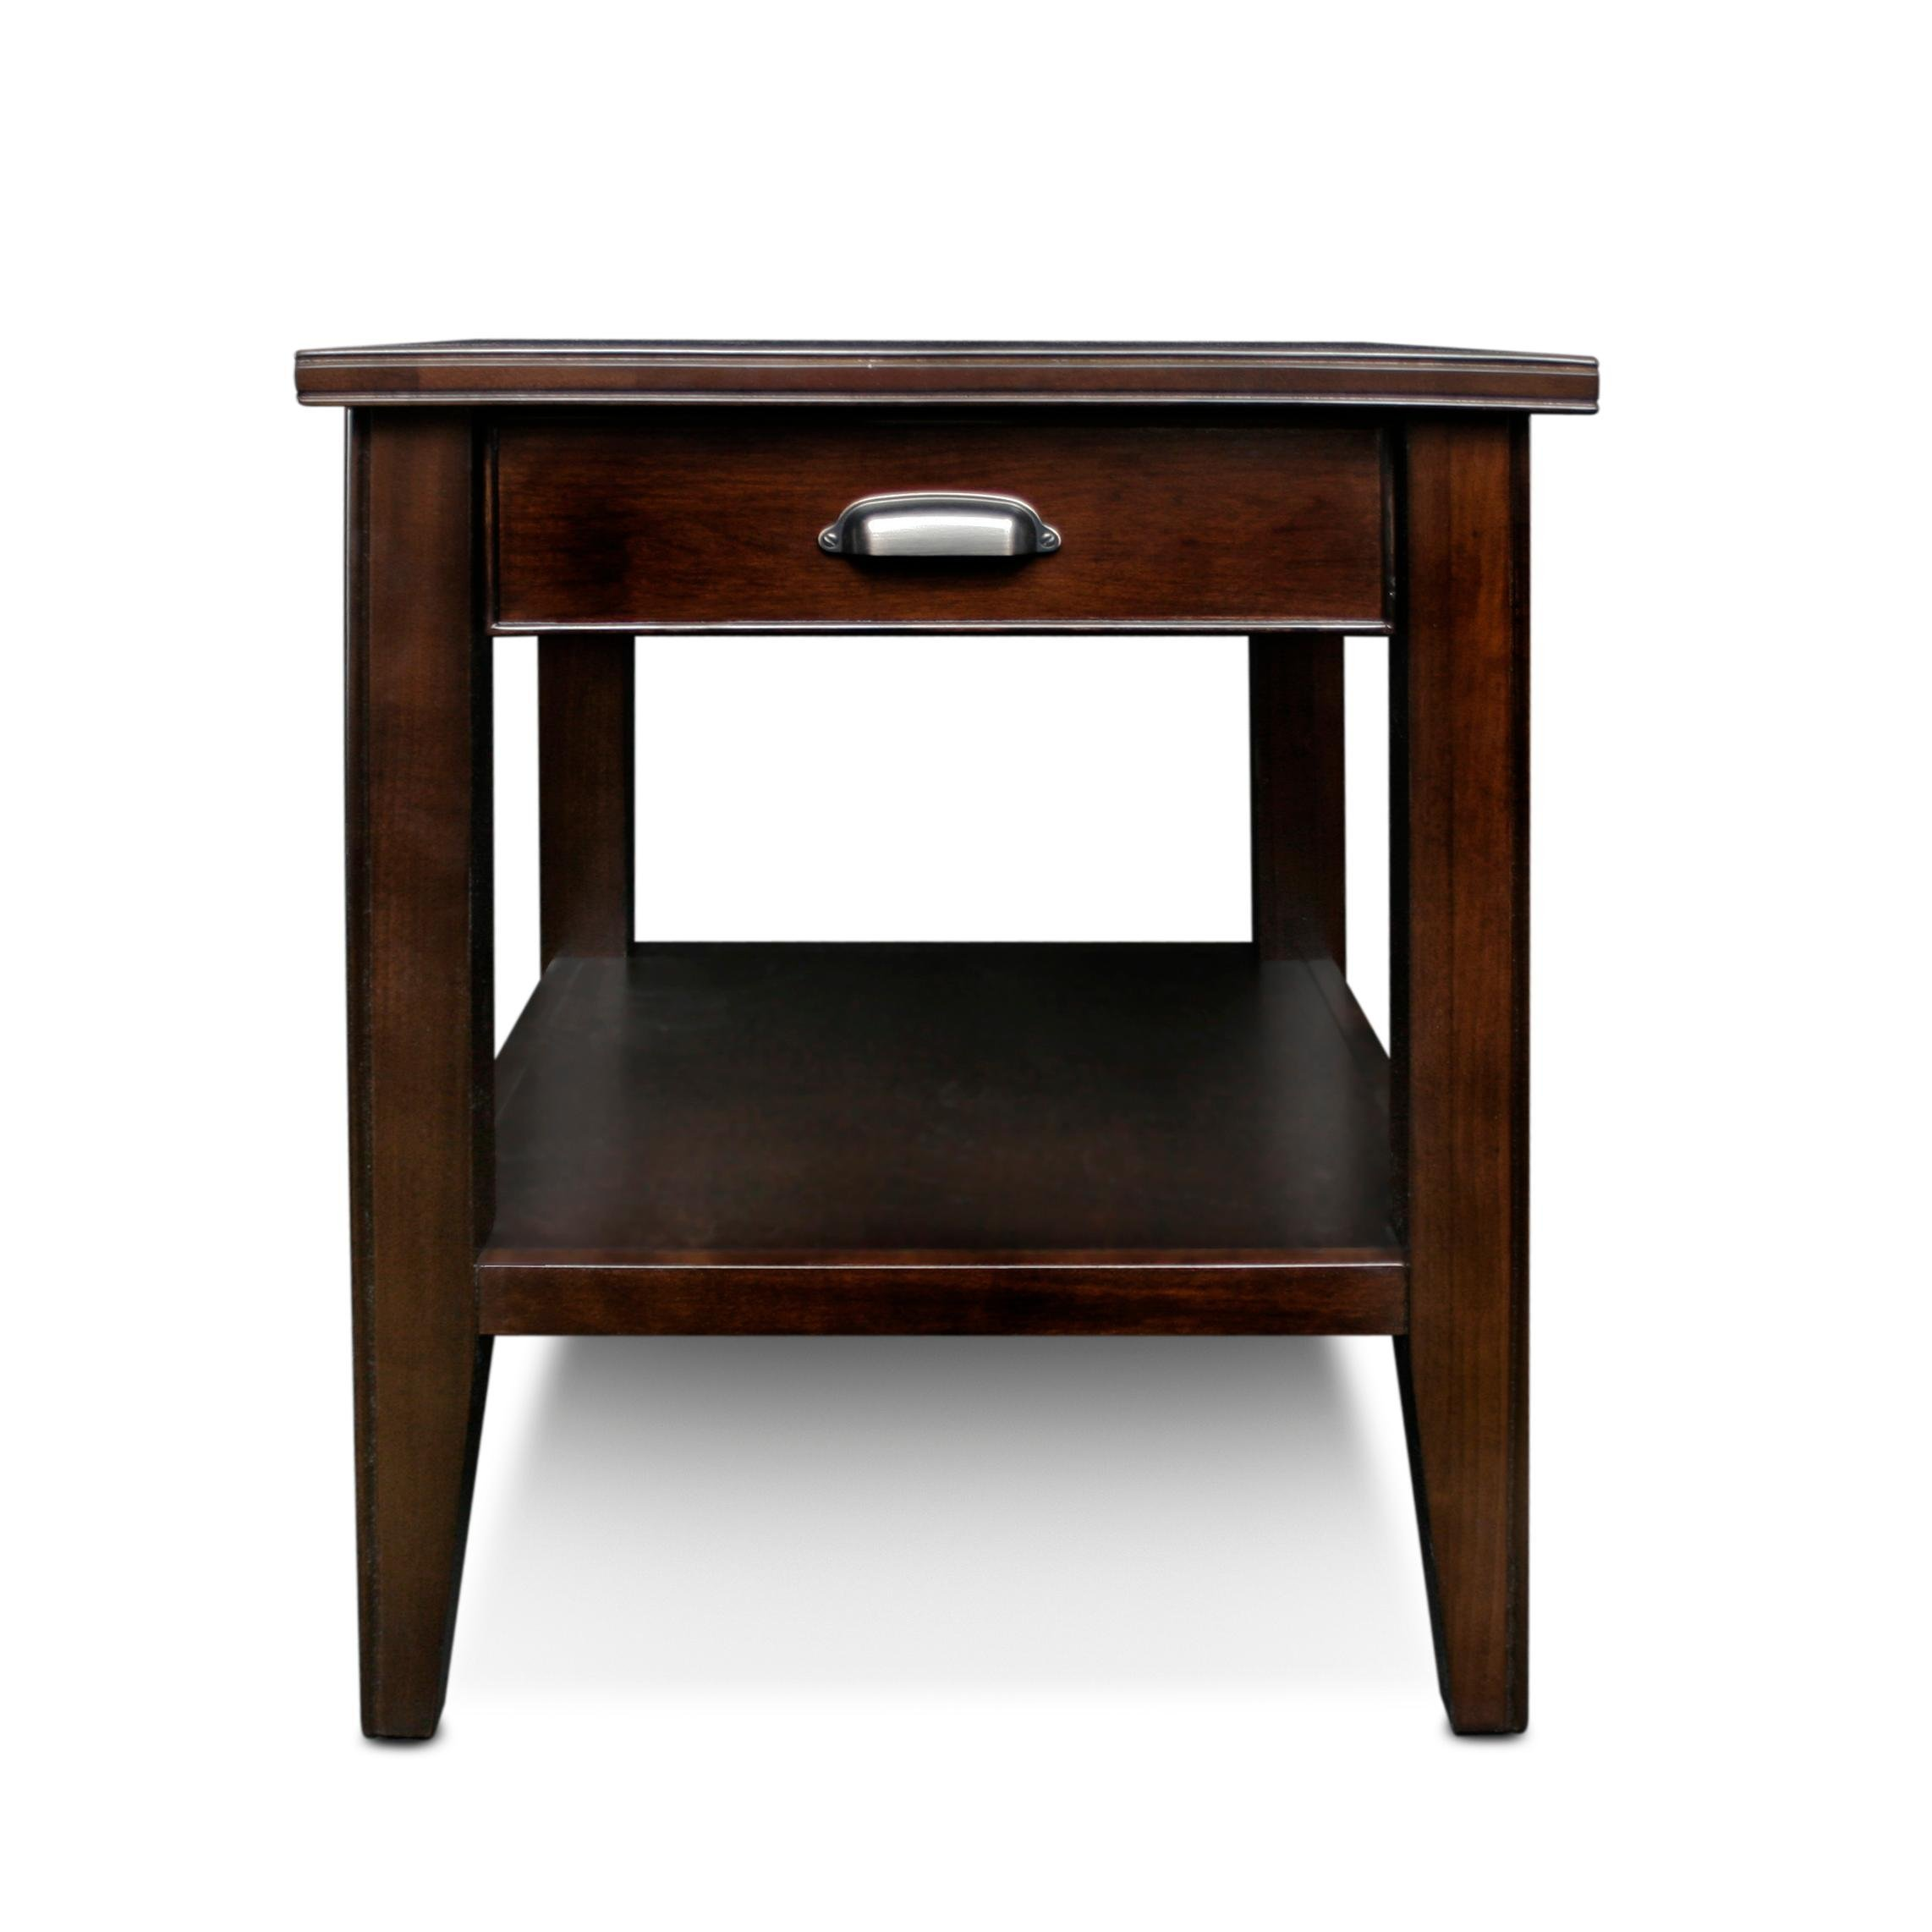 Kitchen Side Table: Amazon.com: Leick Laurent End Table With Drawer: Kitchen